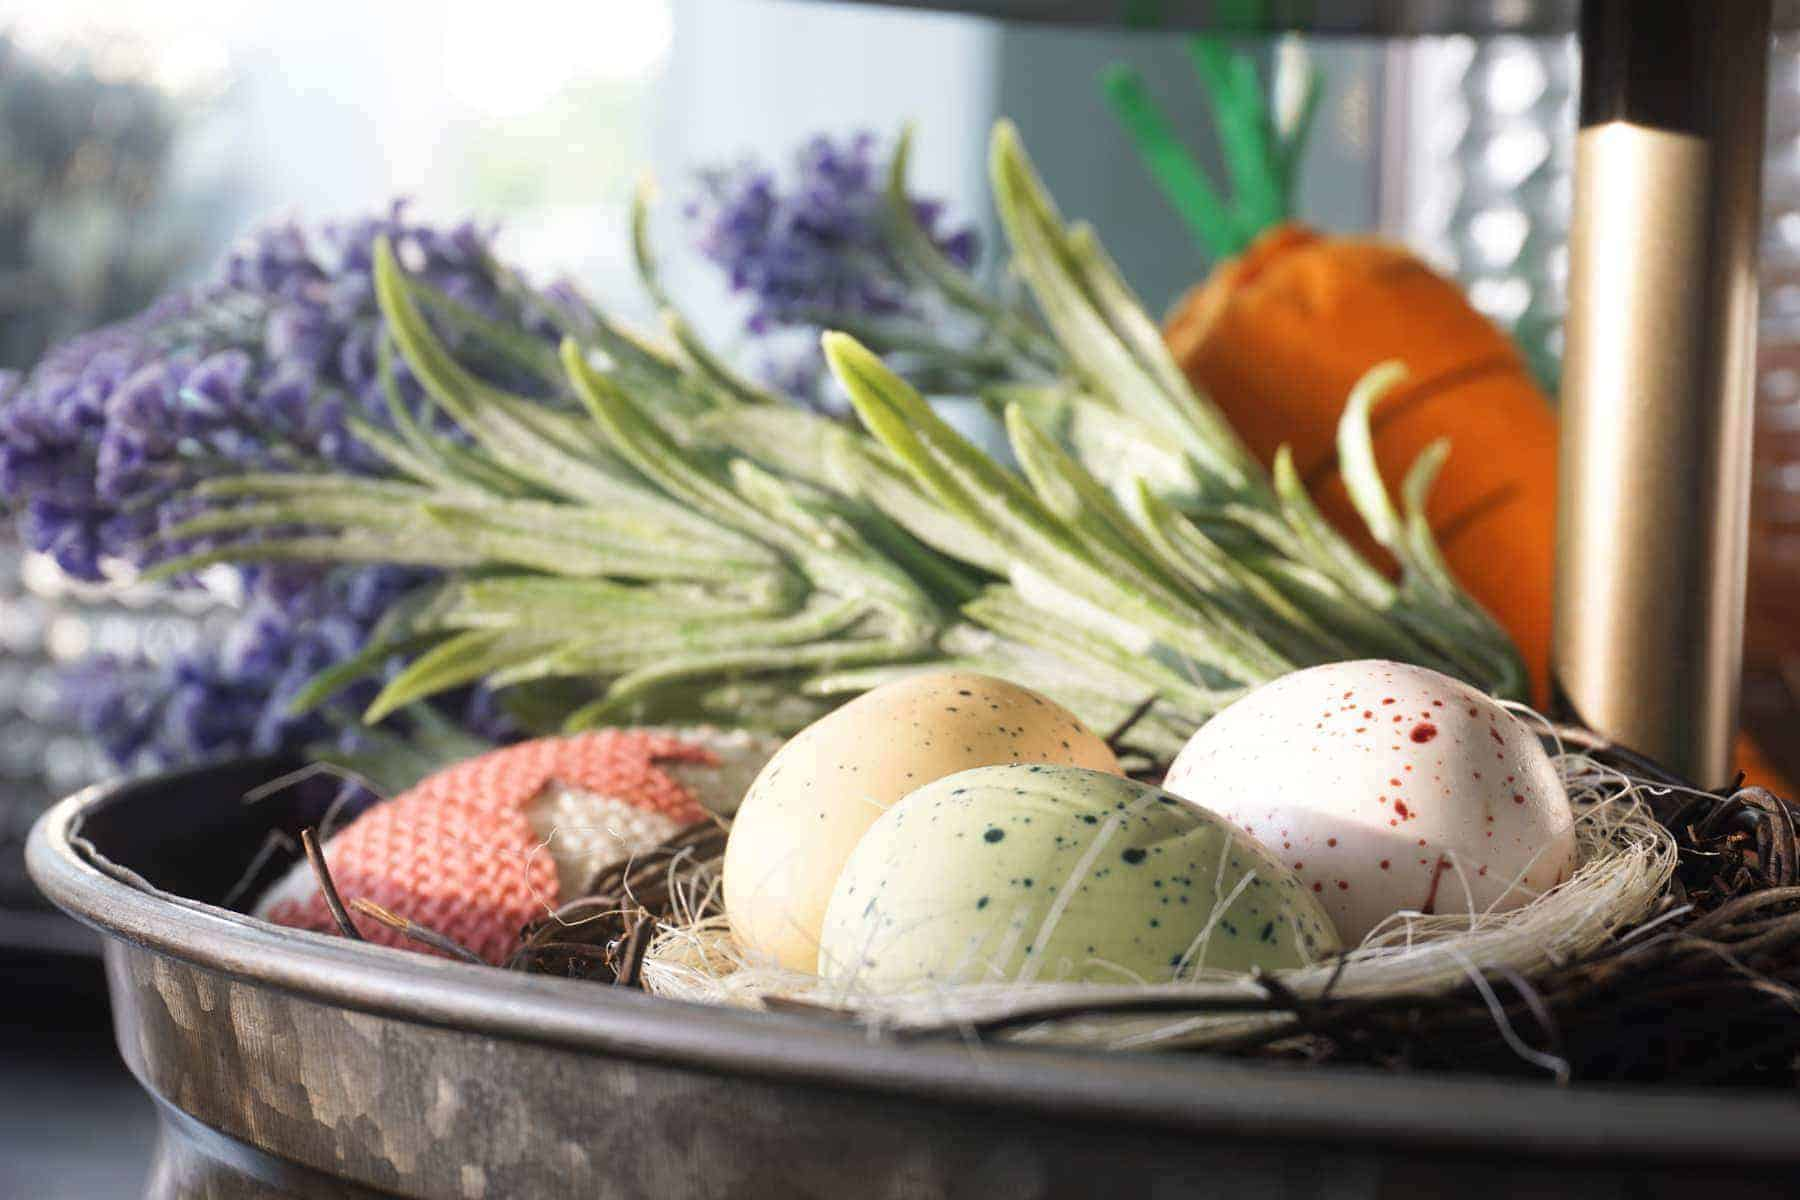 Dyed Eggs, Lavender and Carrot Spring Decor Piece on Tiered Tray